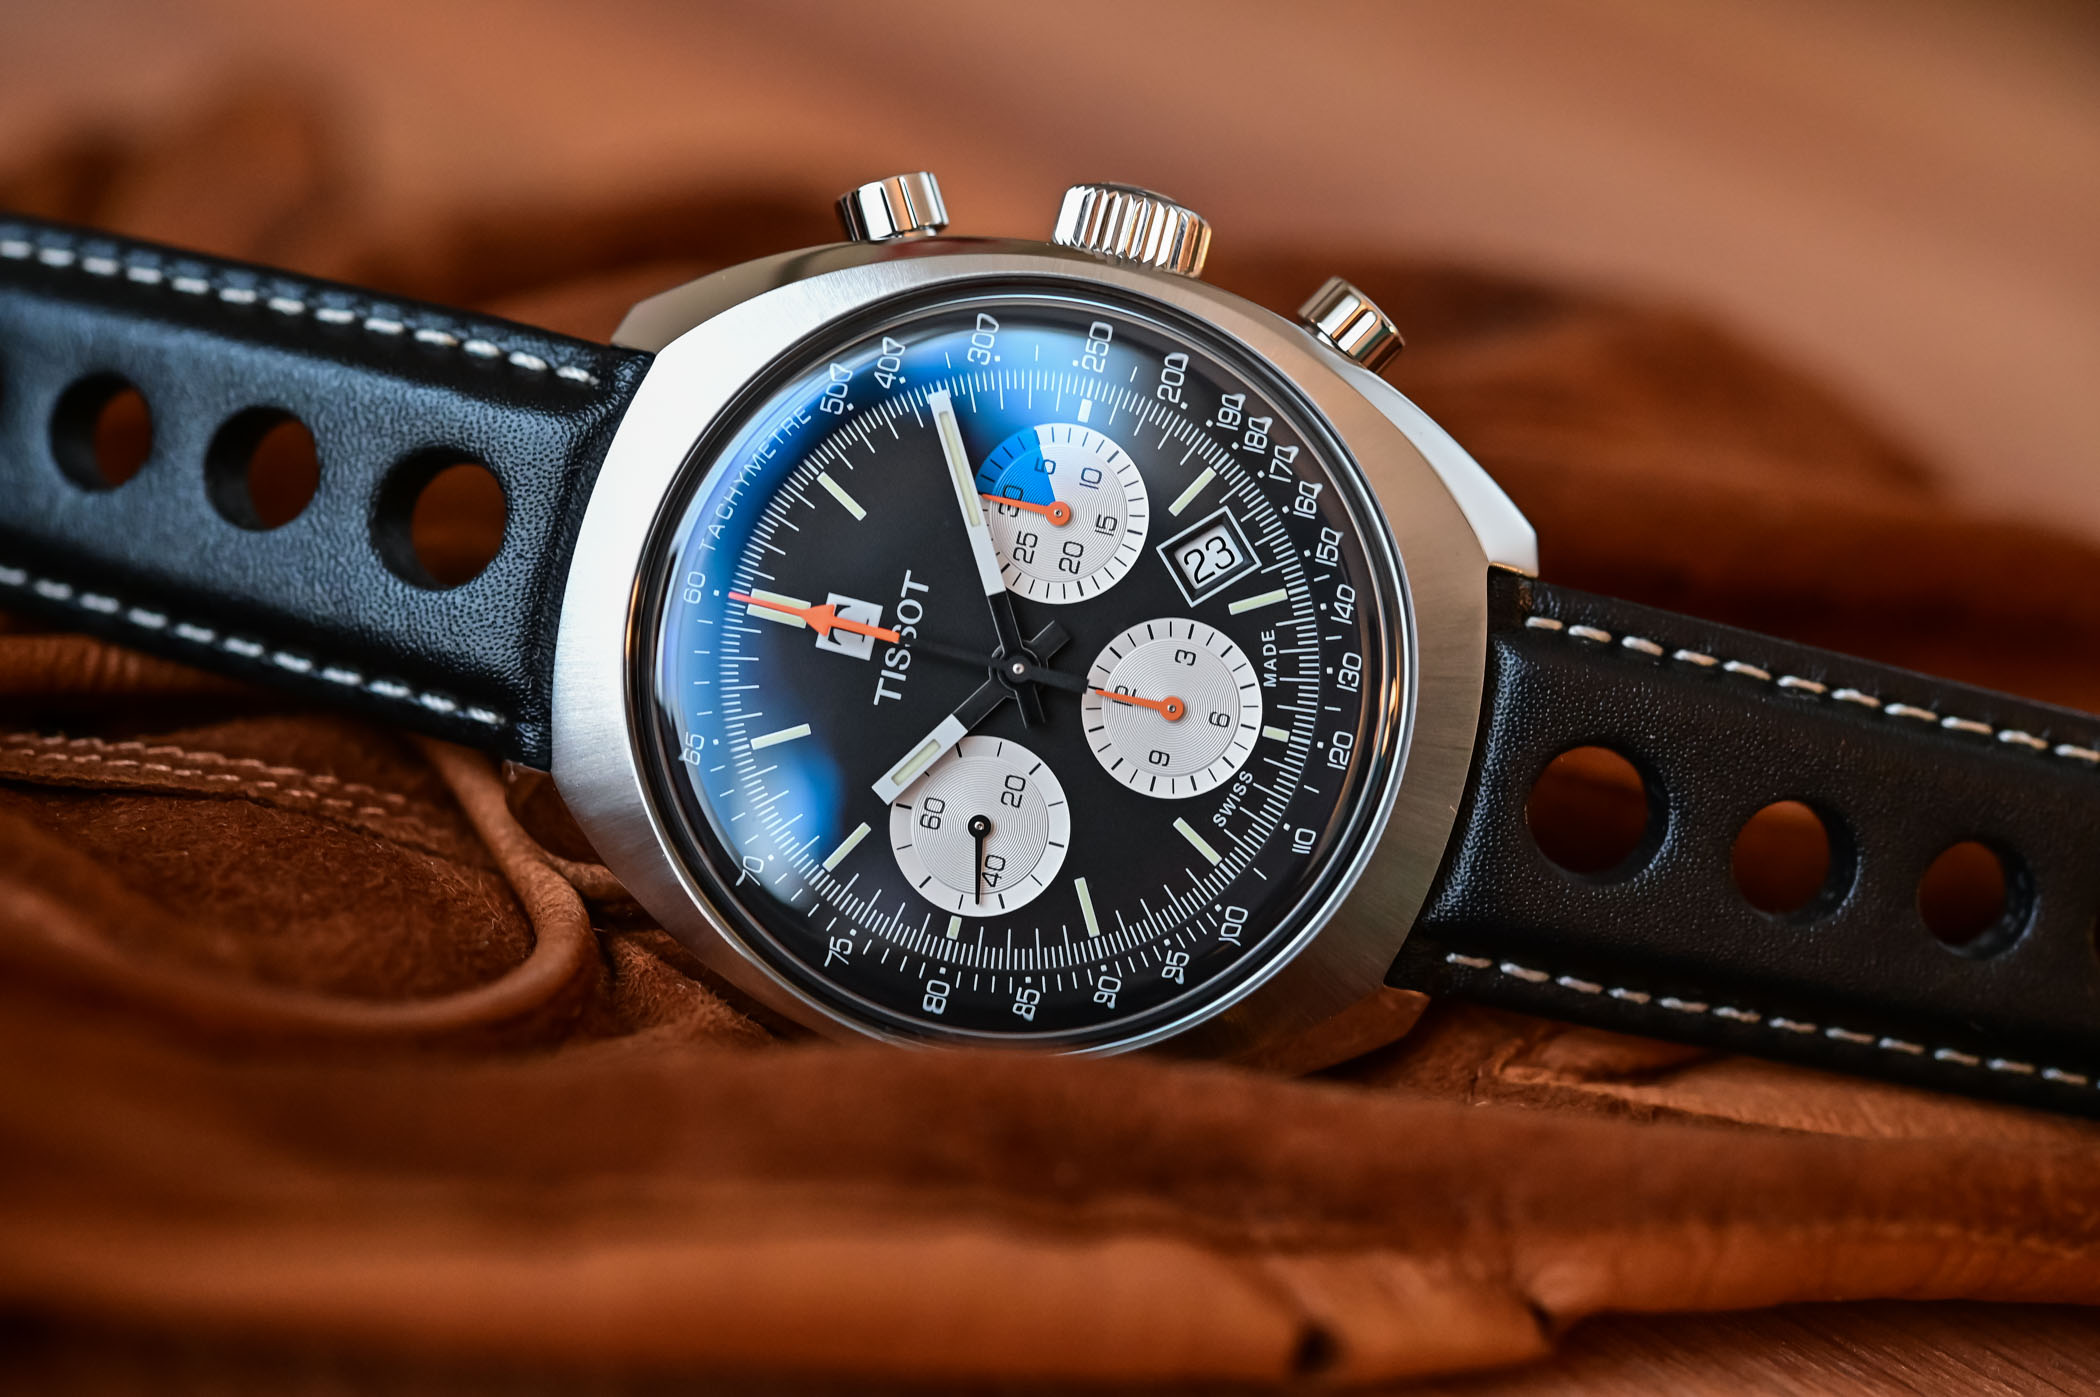 tissot-heritage-1973-chronograph-T124.427.16.051.00-review-7.jpg